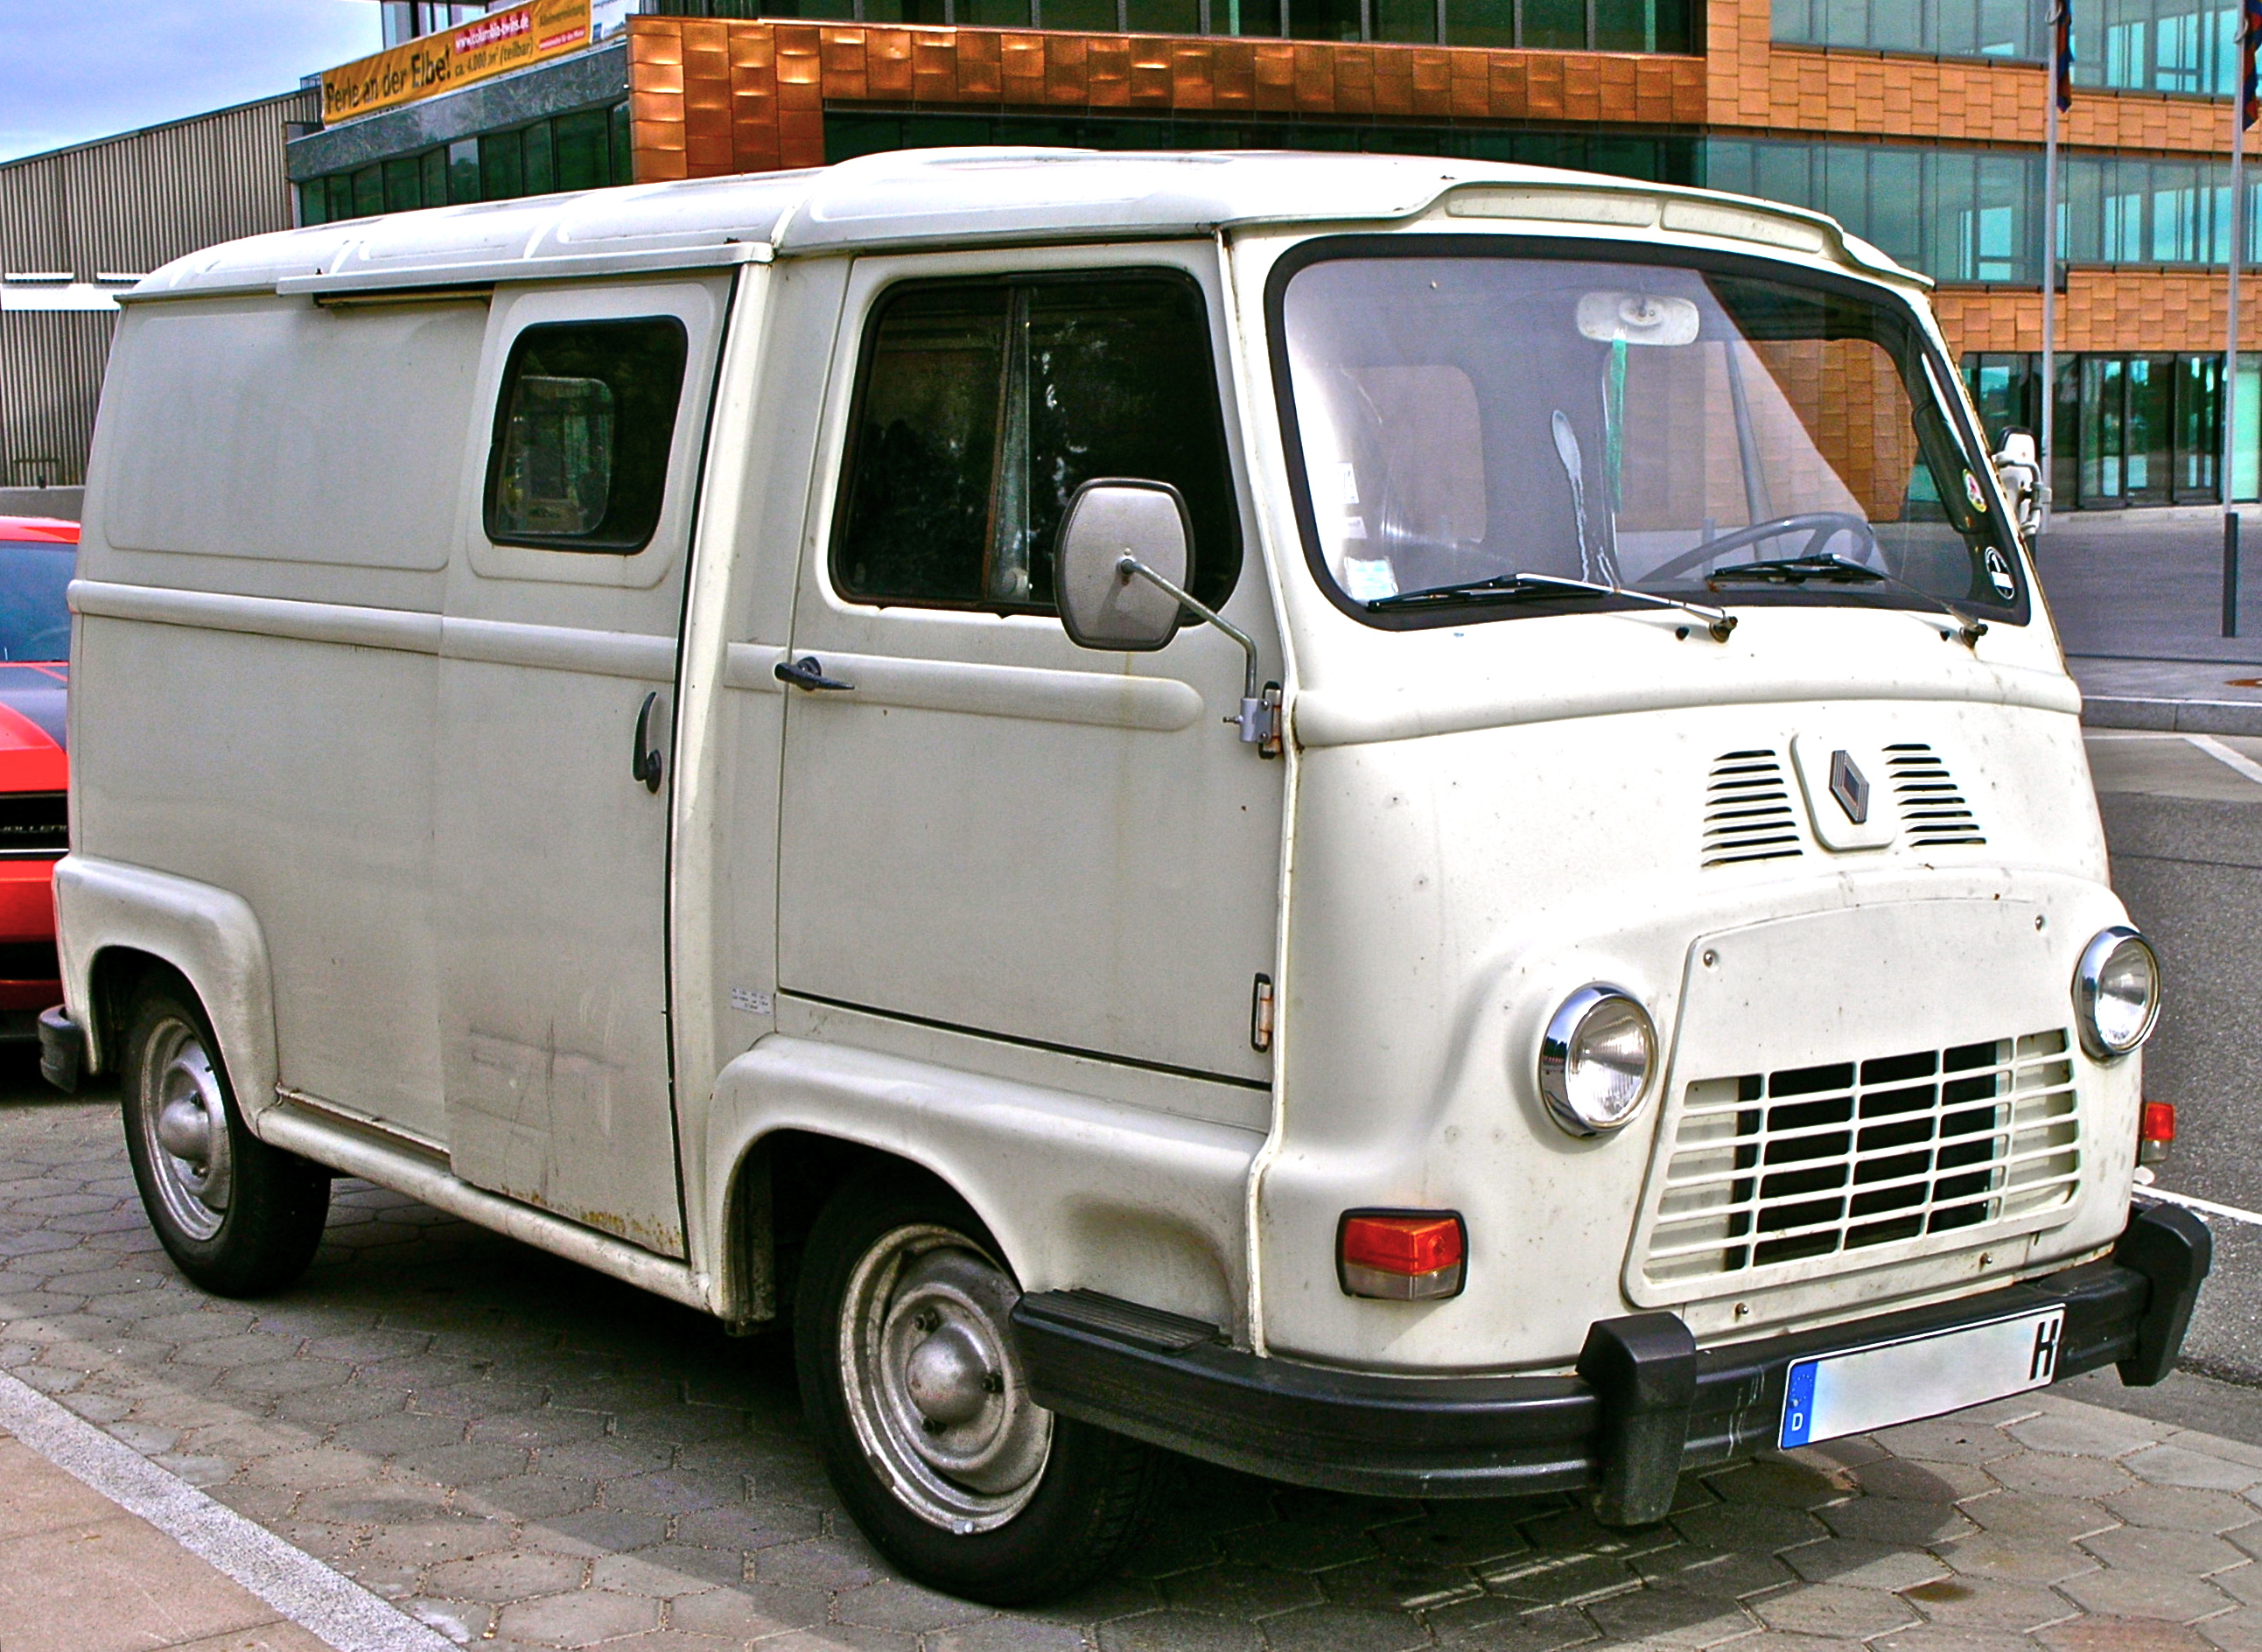 renault estafette photos news reviews specs car listings. Black Bedroom Furniture Sets. Home Design Ideas